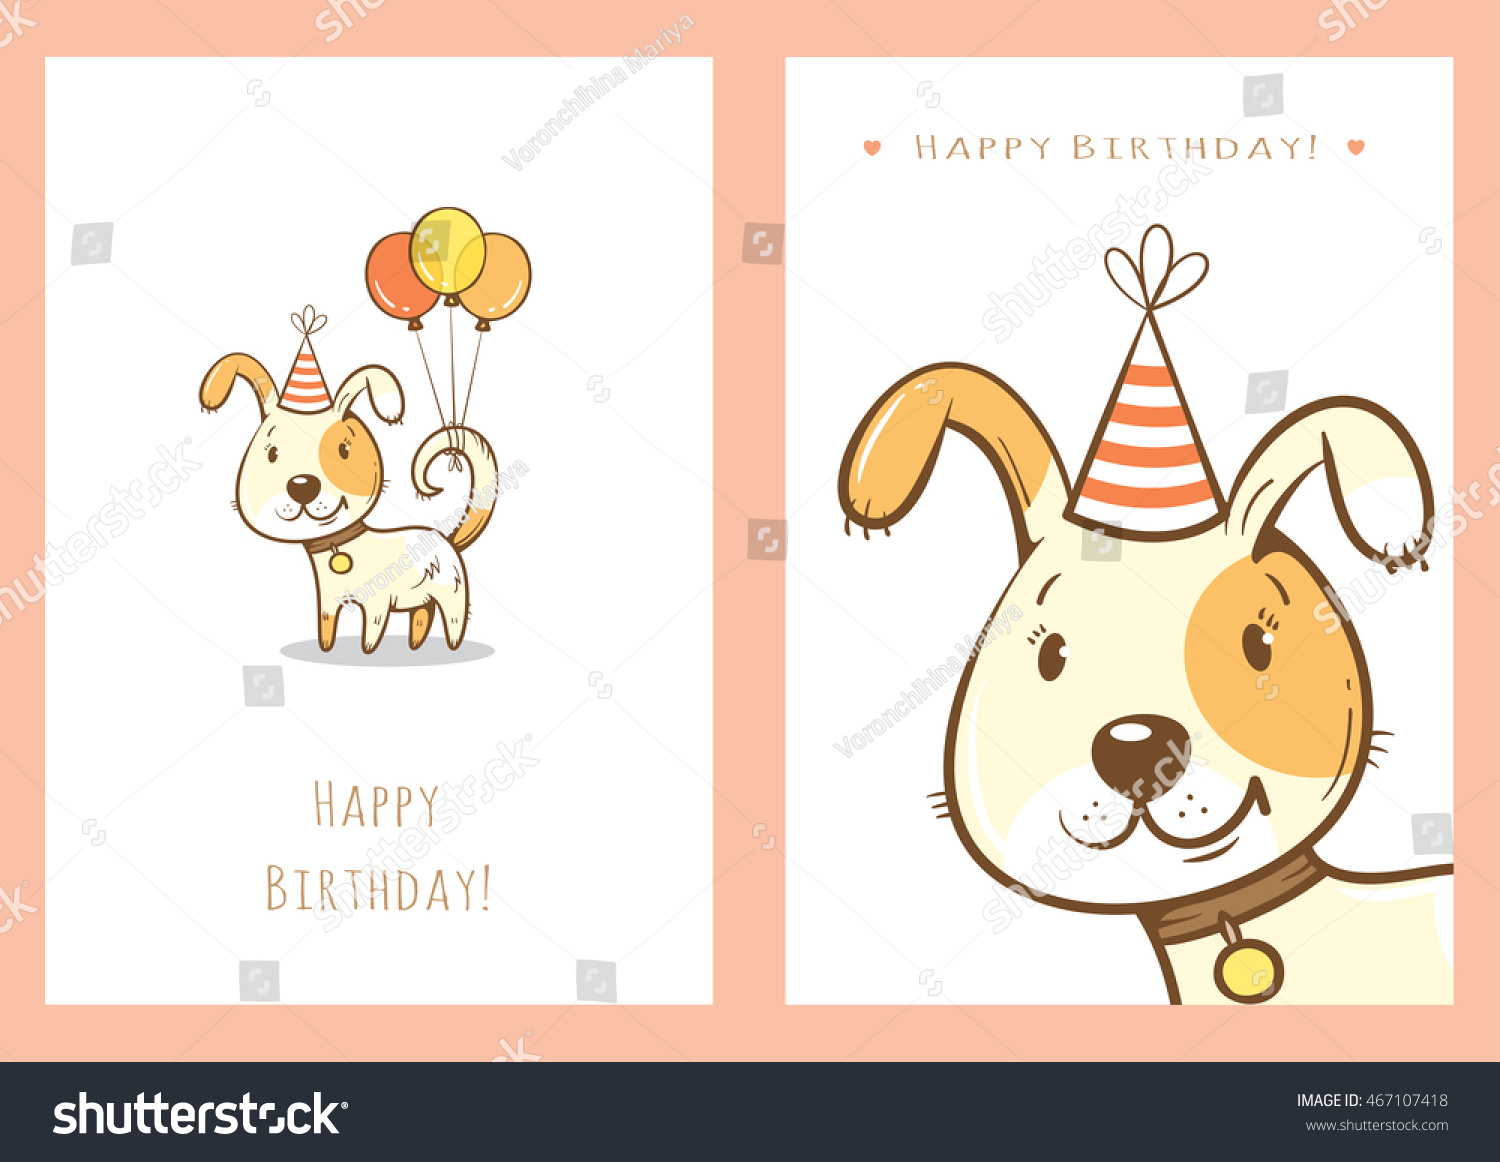 Birthday Cards Set With Cute Cartoon Dogs Balloons And Party Hats Vector Contour Image